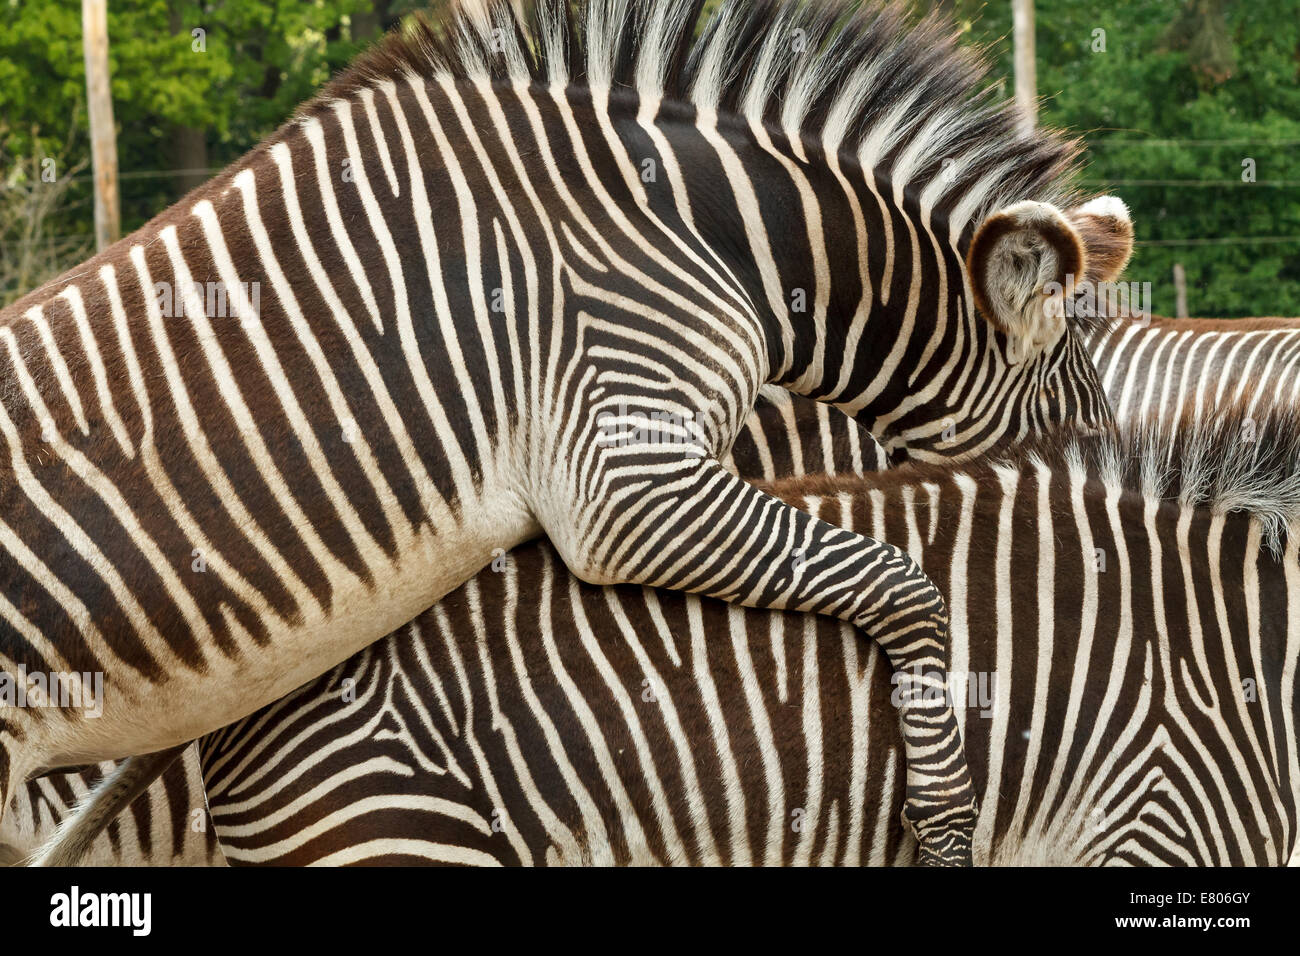 Two zebras pairing. This shot was taken at the zoo in Holland. Beautiful pattern with the black and white stripes. - Stock Image